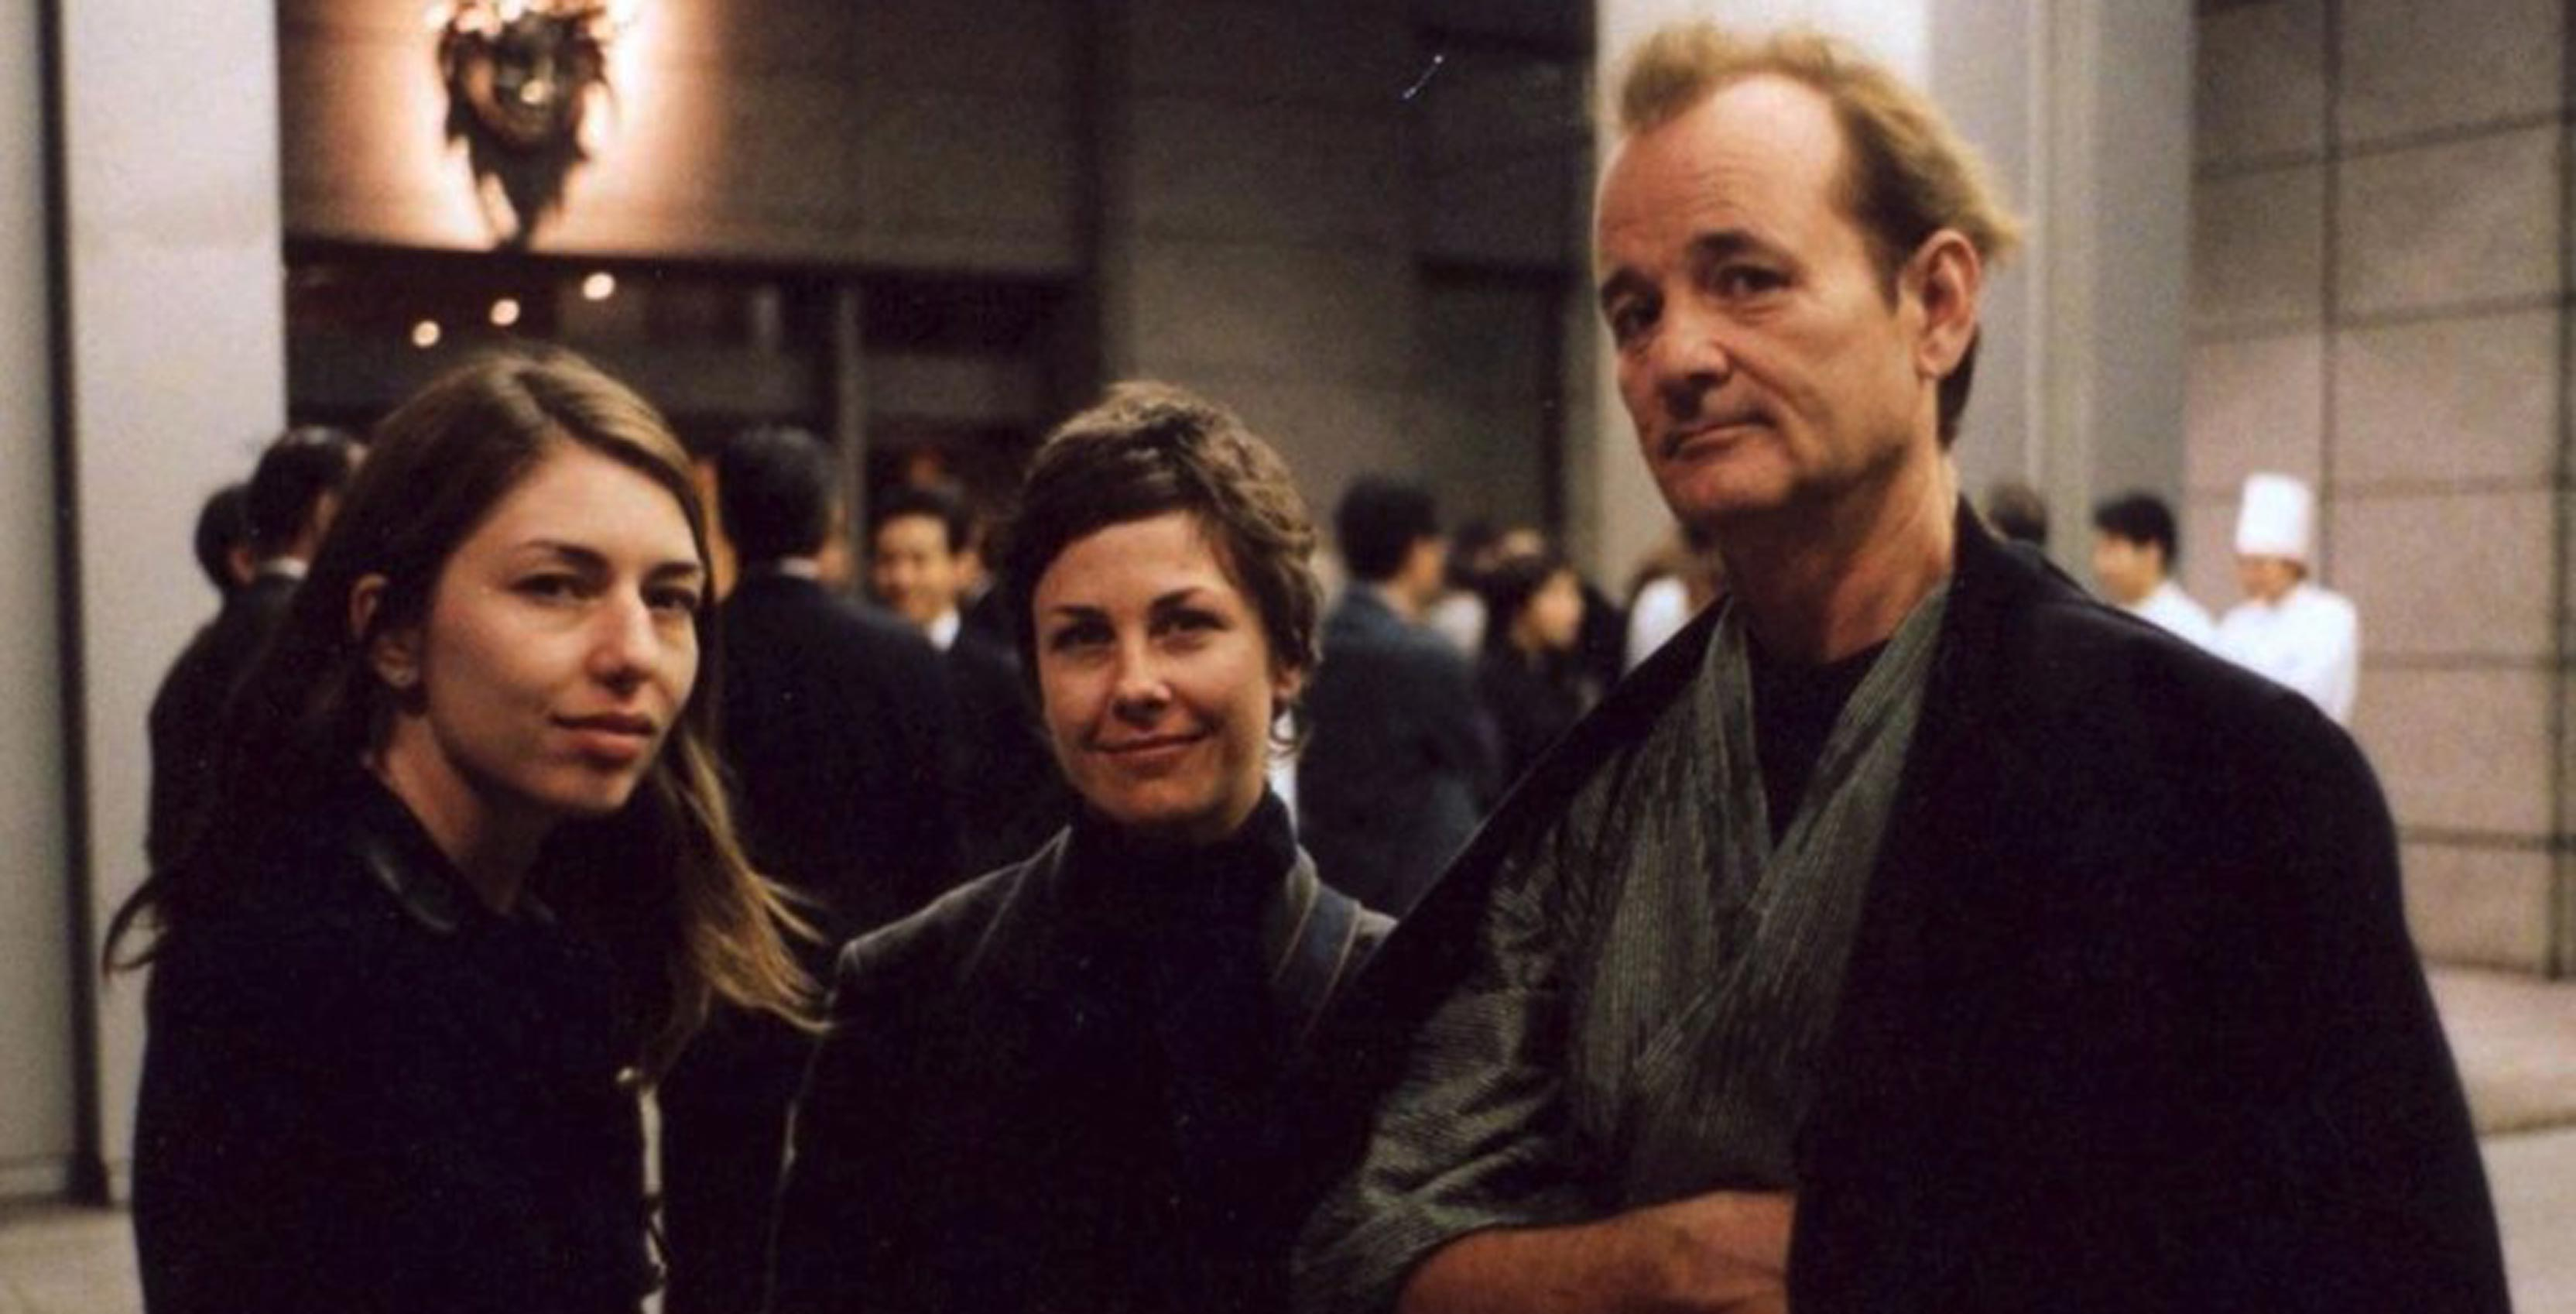 Lost in Translation director Sofia Coppola and actor Bill Murray